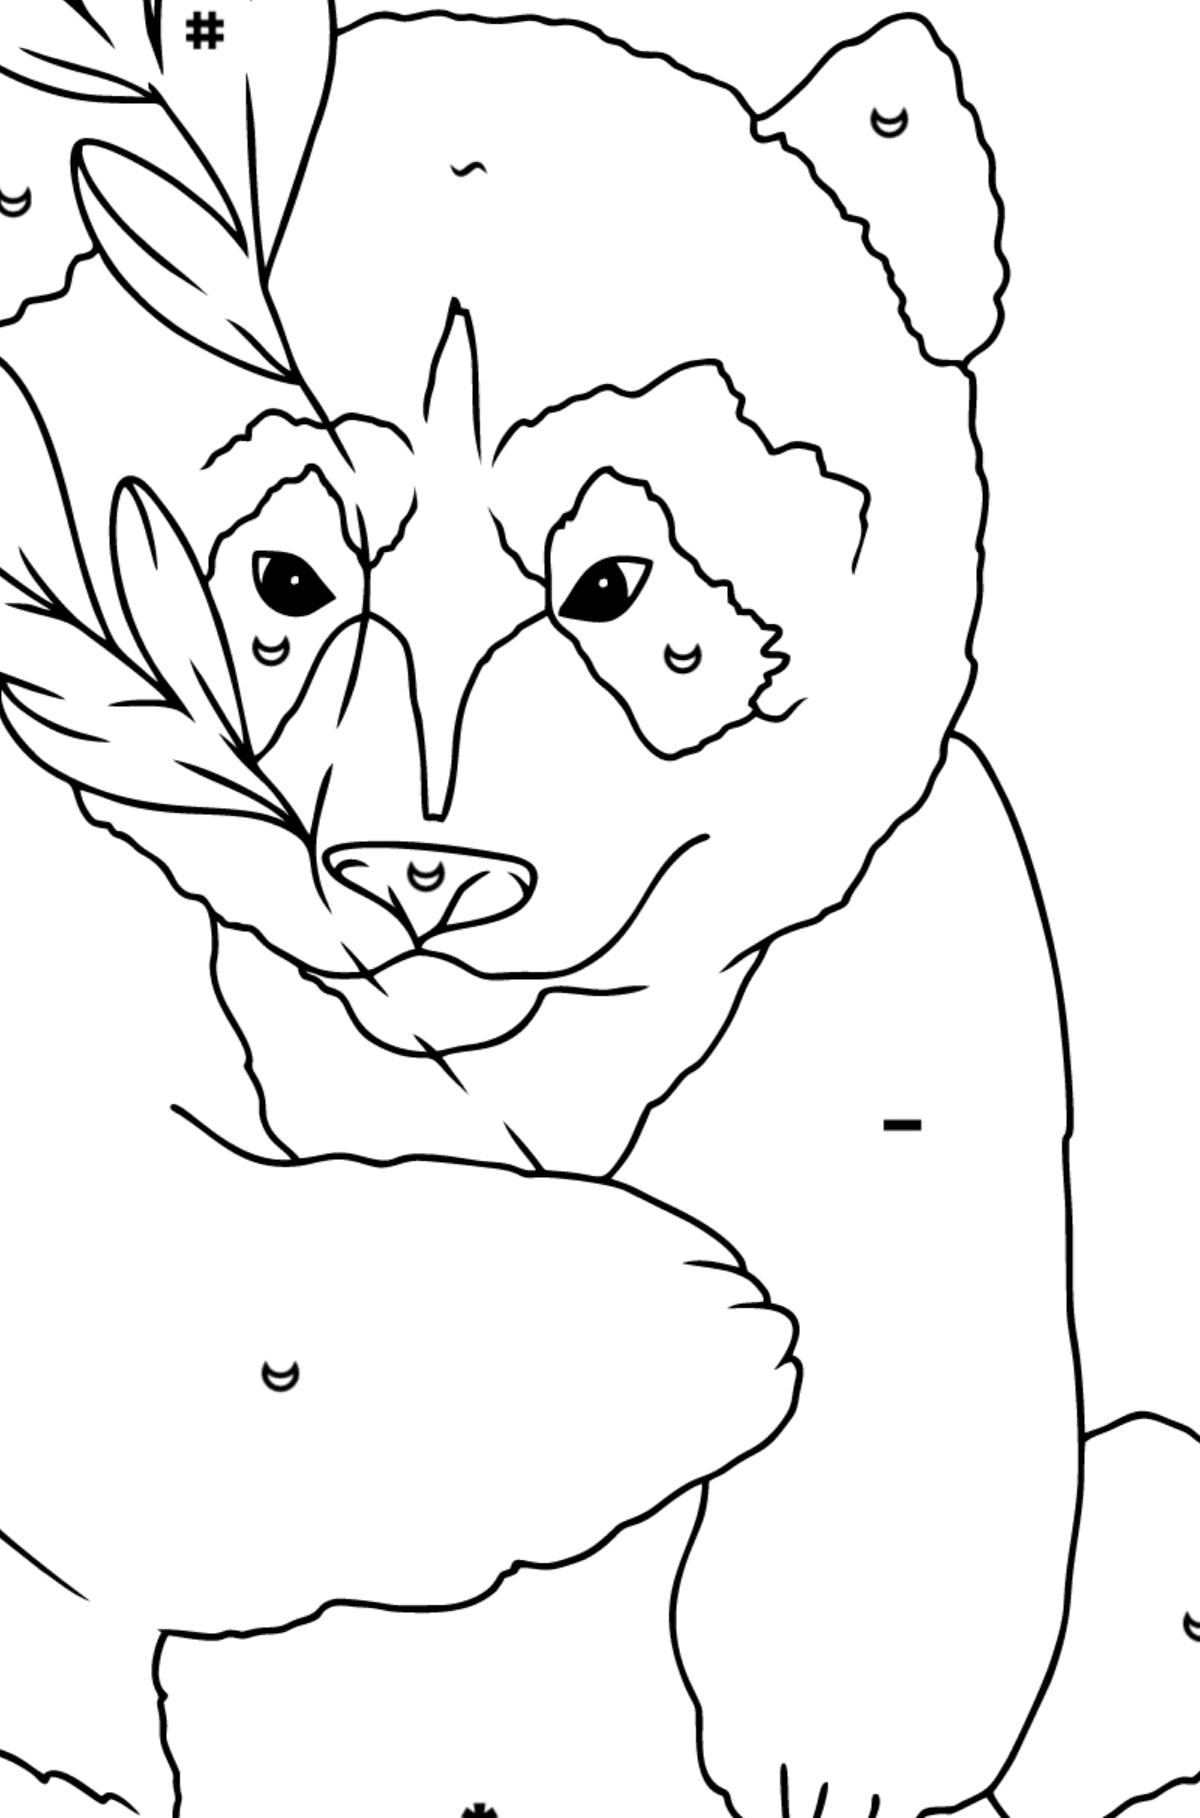 Coloring Page - A Panda is Hugging Bamboo Leaves - Coloring by Symbols for Children